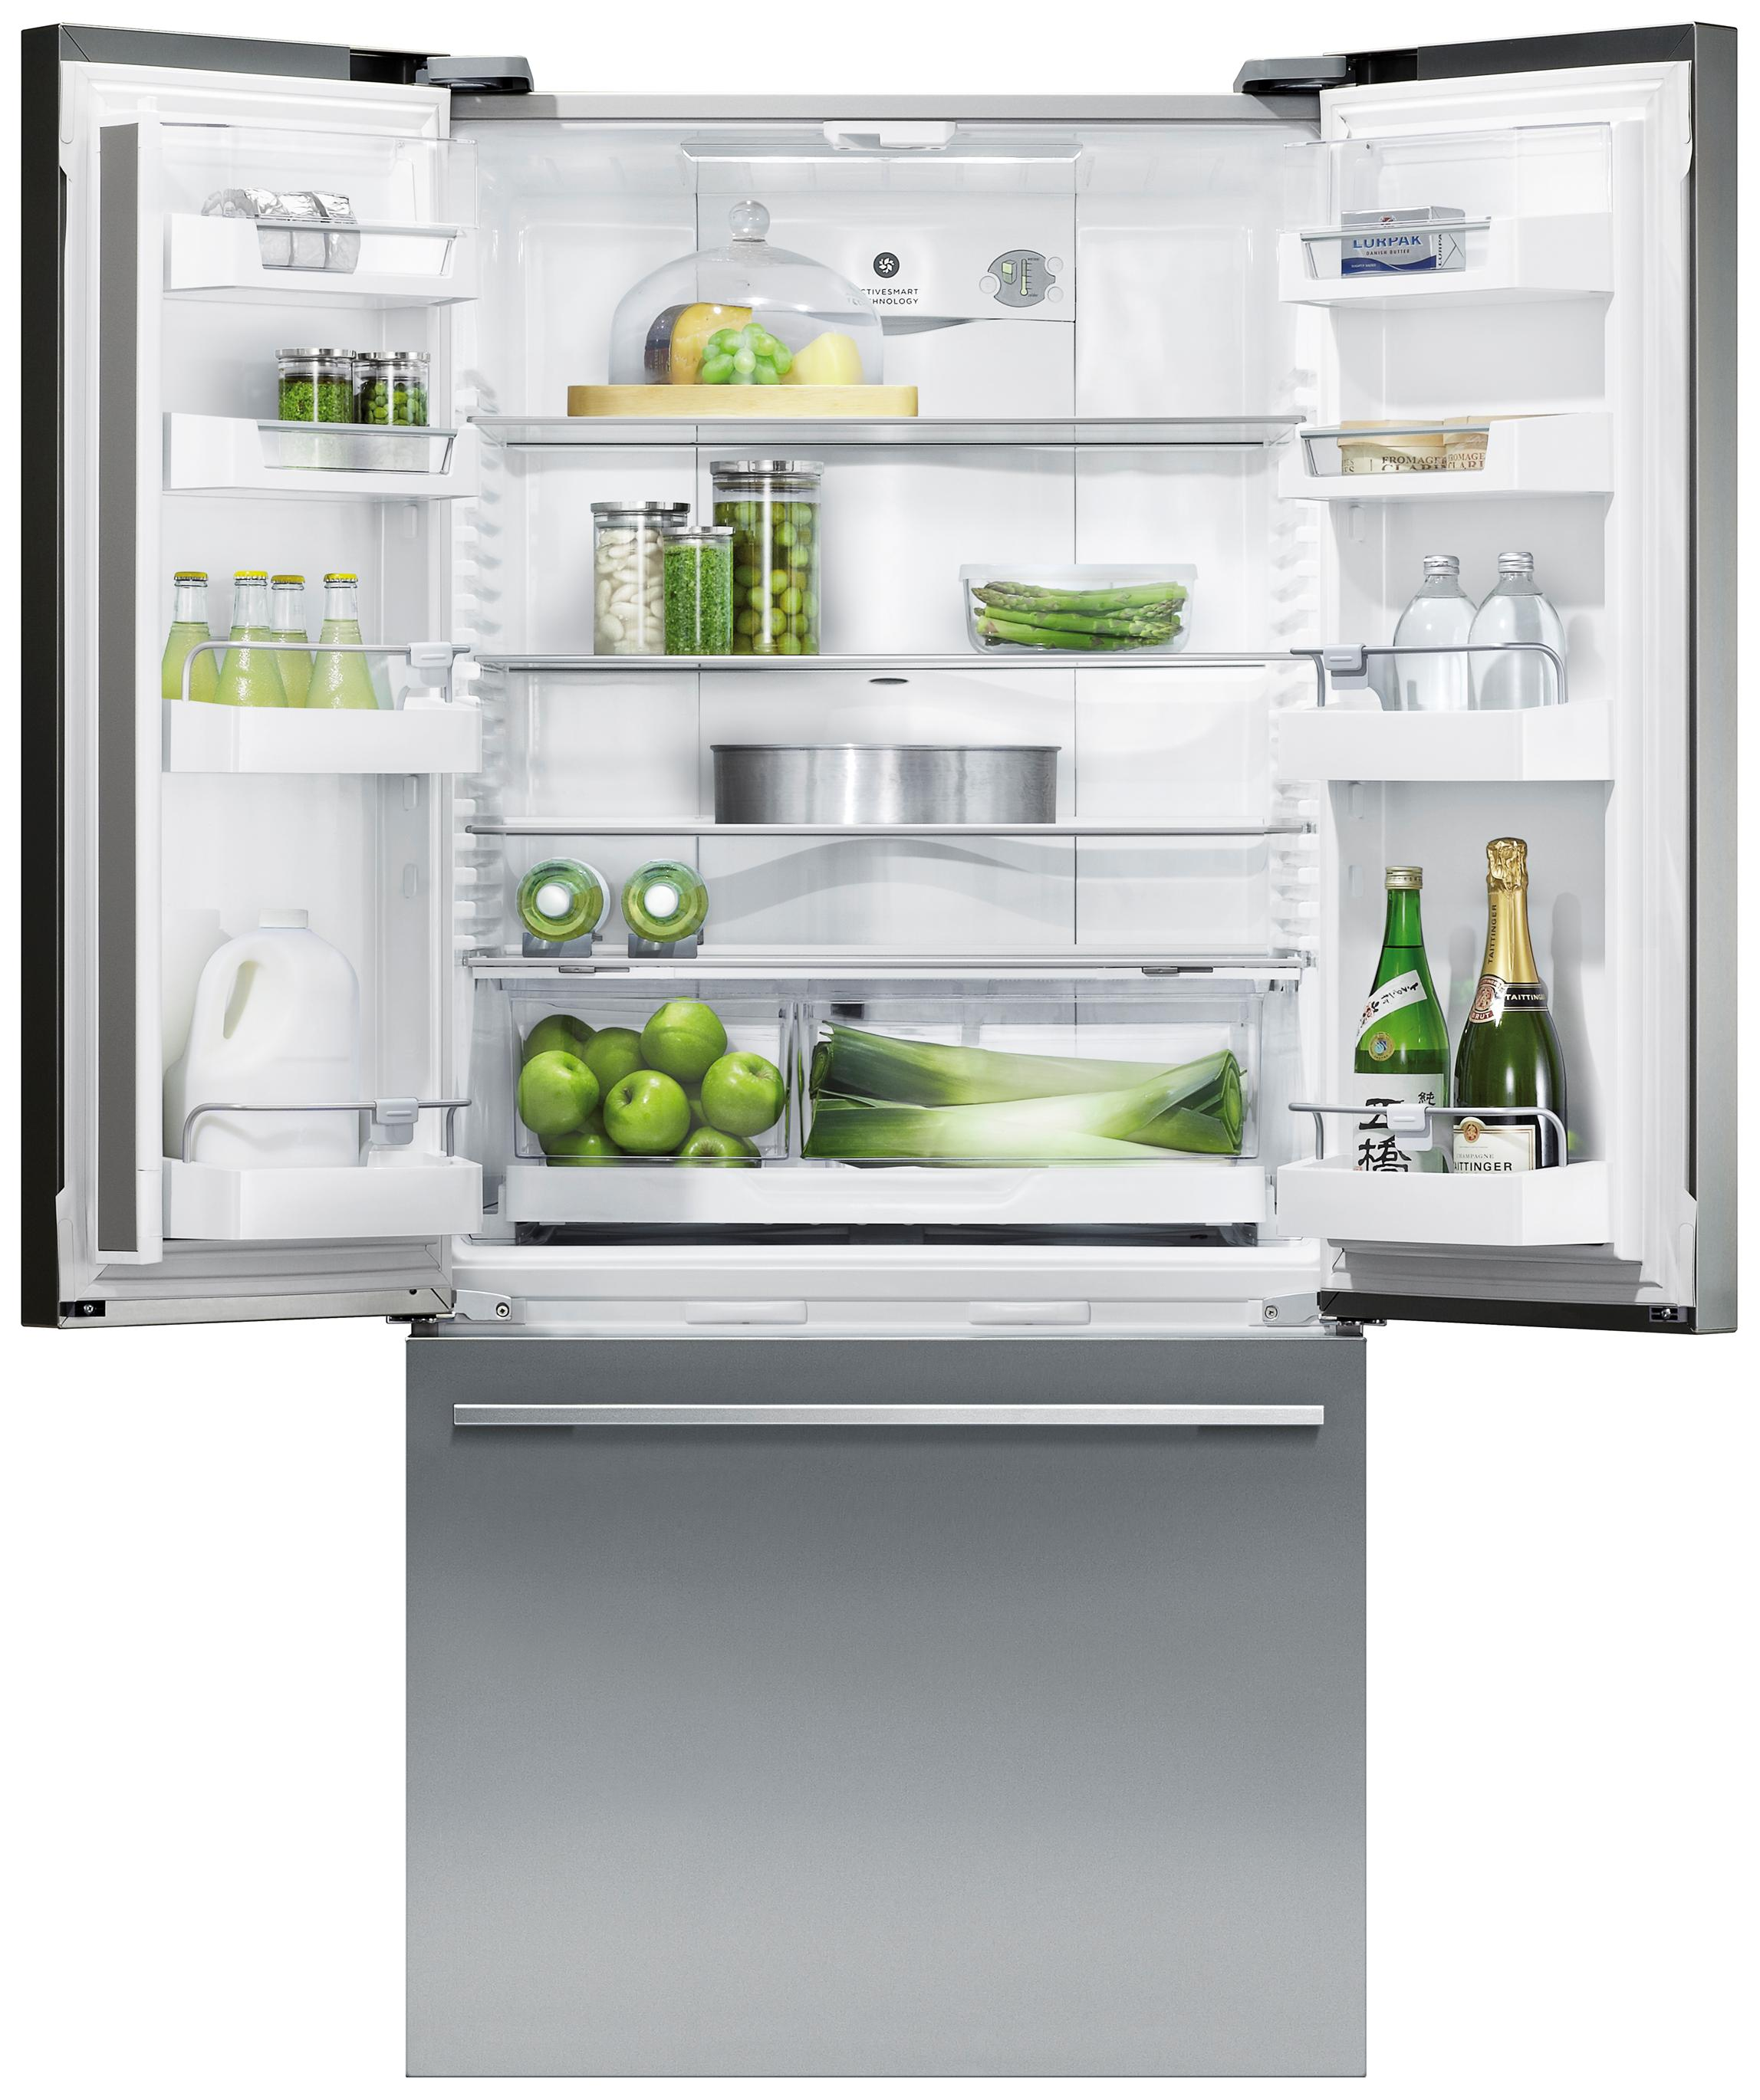 Uncategorized Fisher And Paykel Kitchen Appliances fisher paykel appliances introduces new series of activesmart kitchen refrigerators active smart refrigeratorphoto file